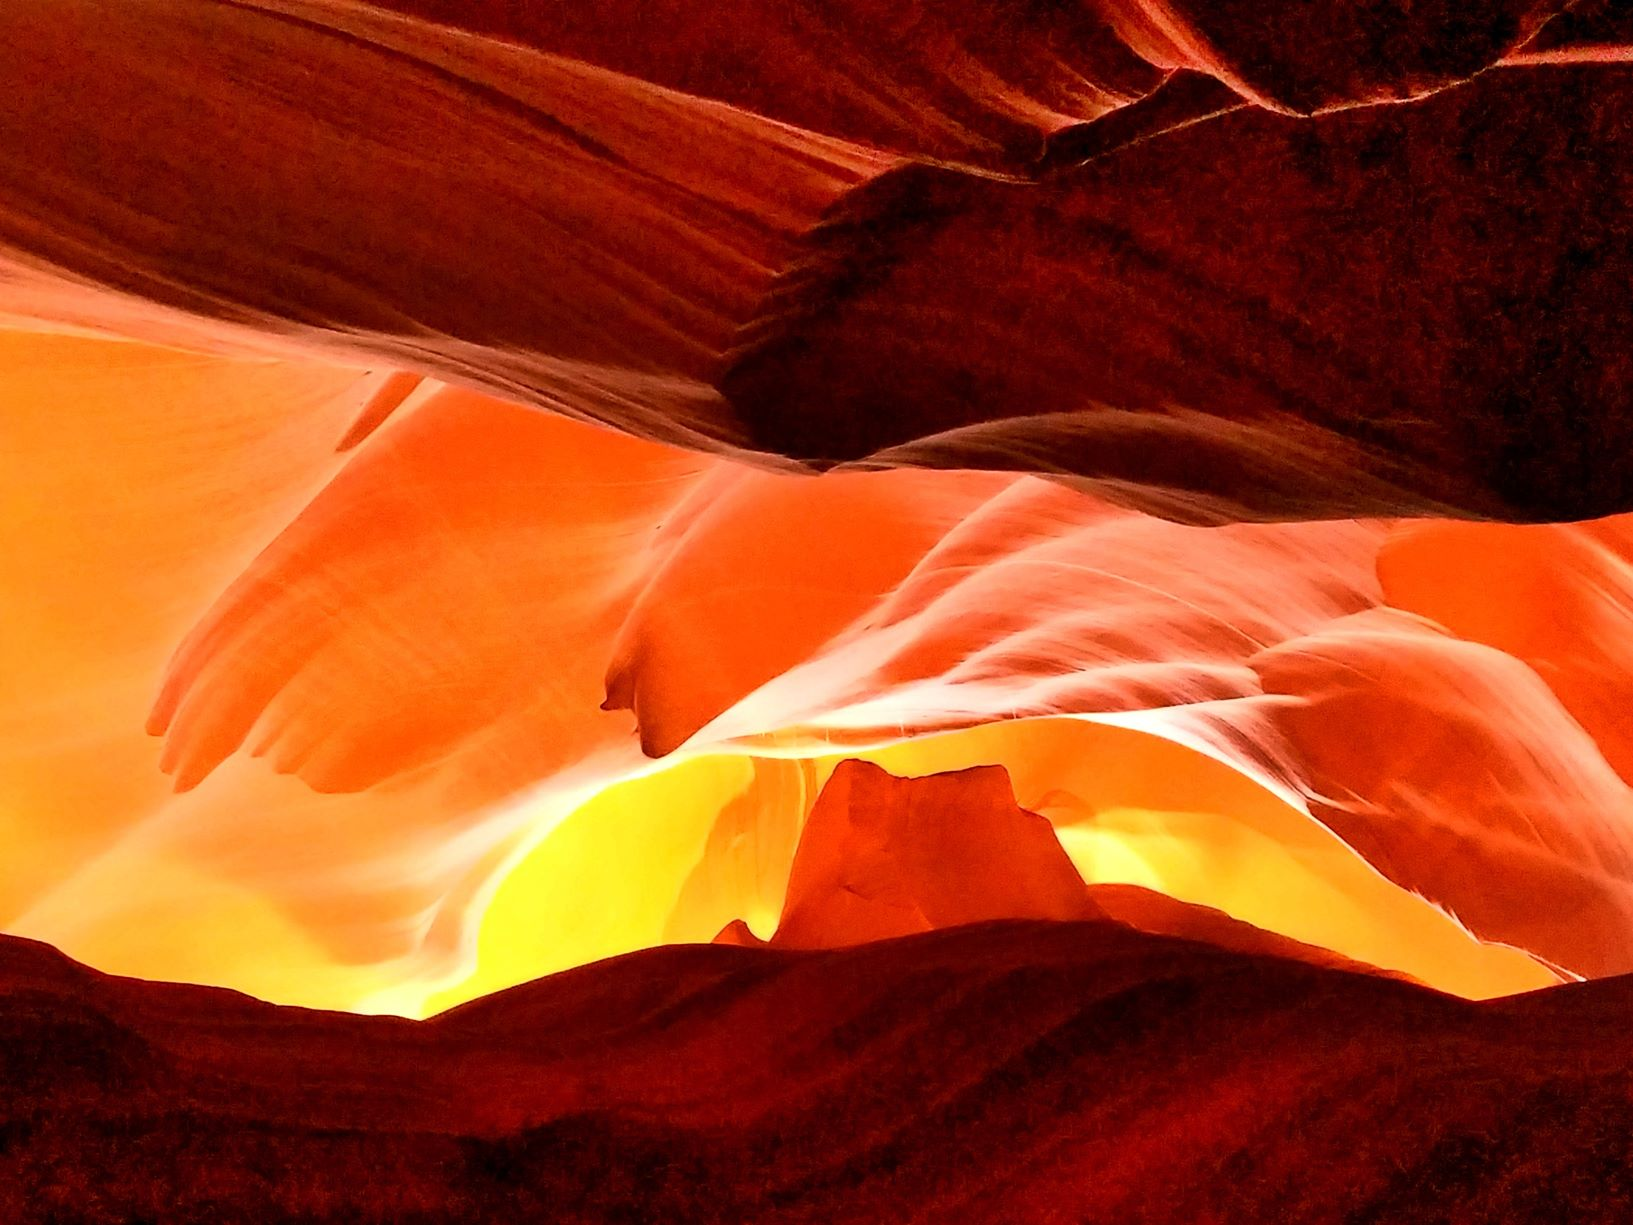 antelope-canyon-recipes-for-travel-12.jpg